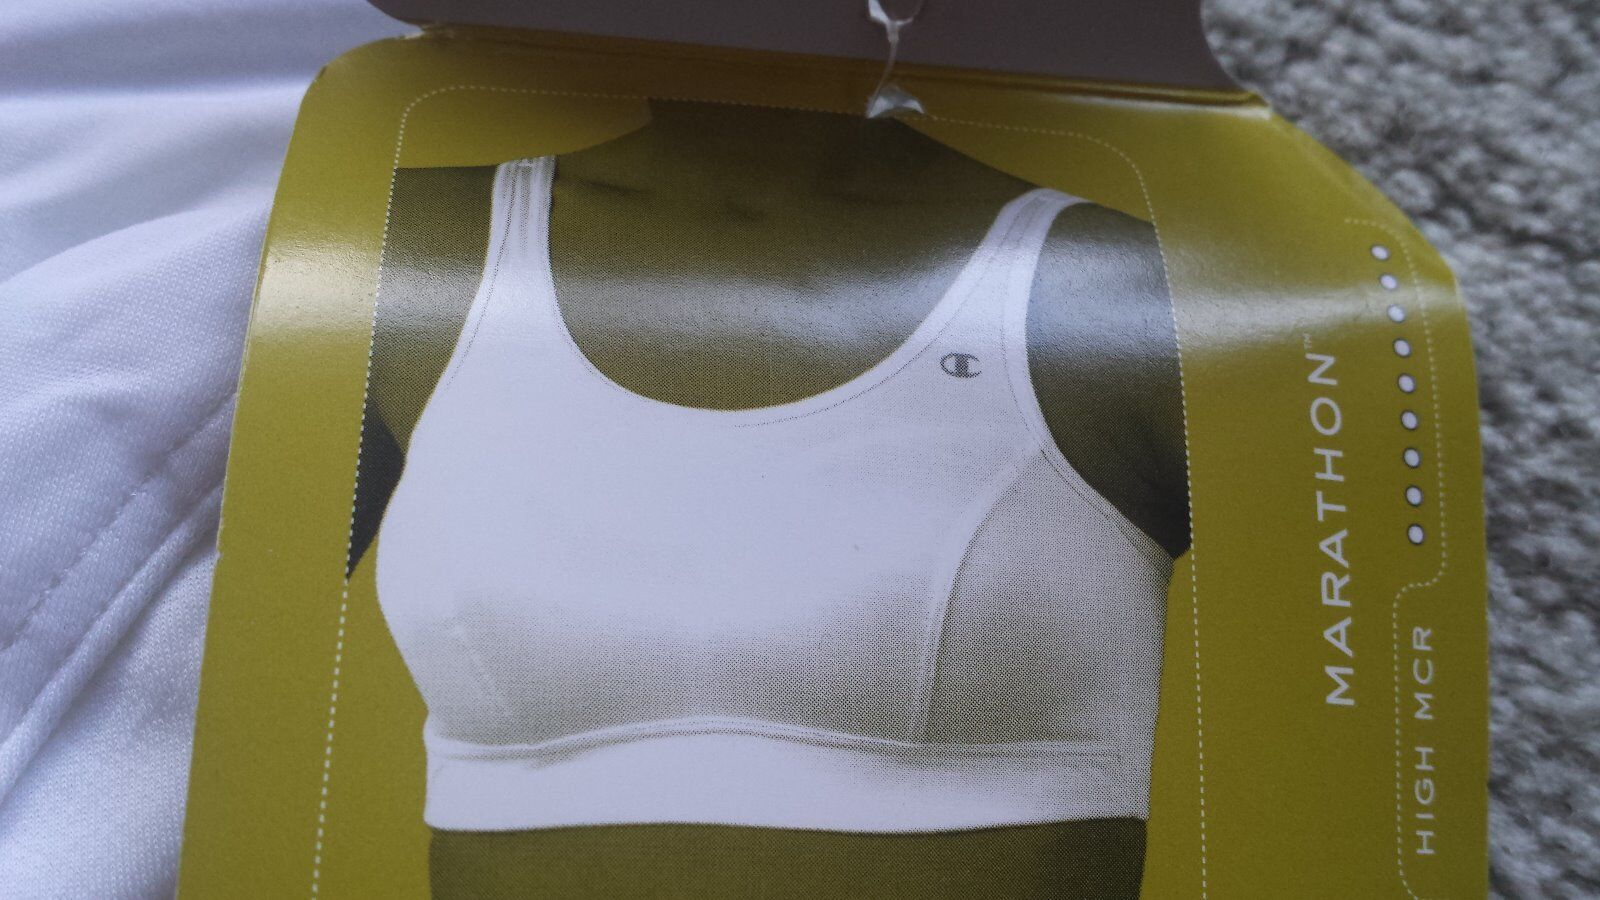 NEW Champion Sports Bra, White, High Impact, Size 34C, SOLD OUT